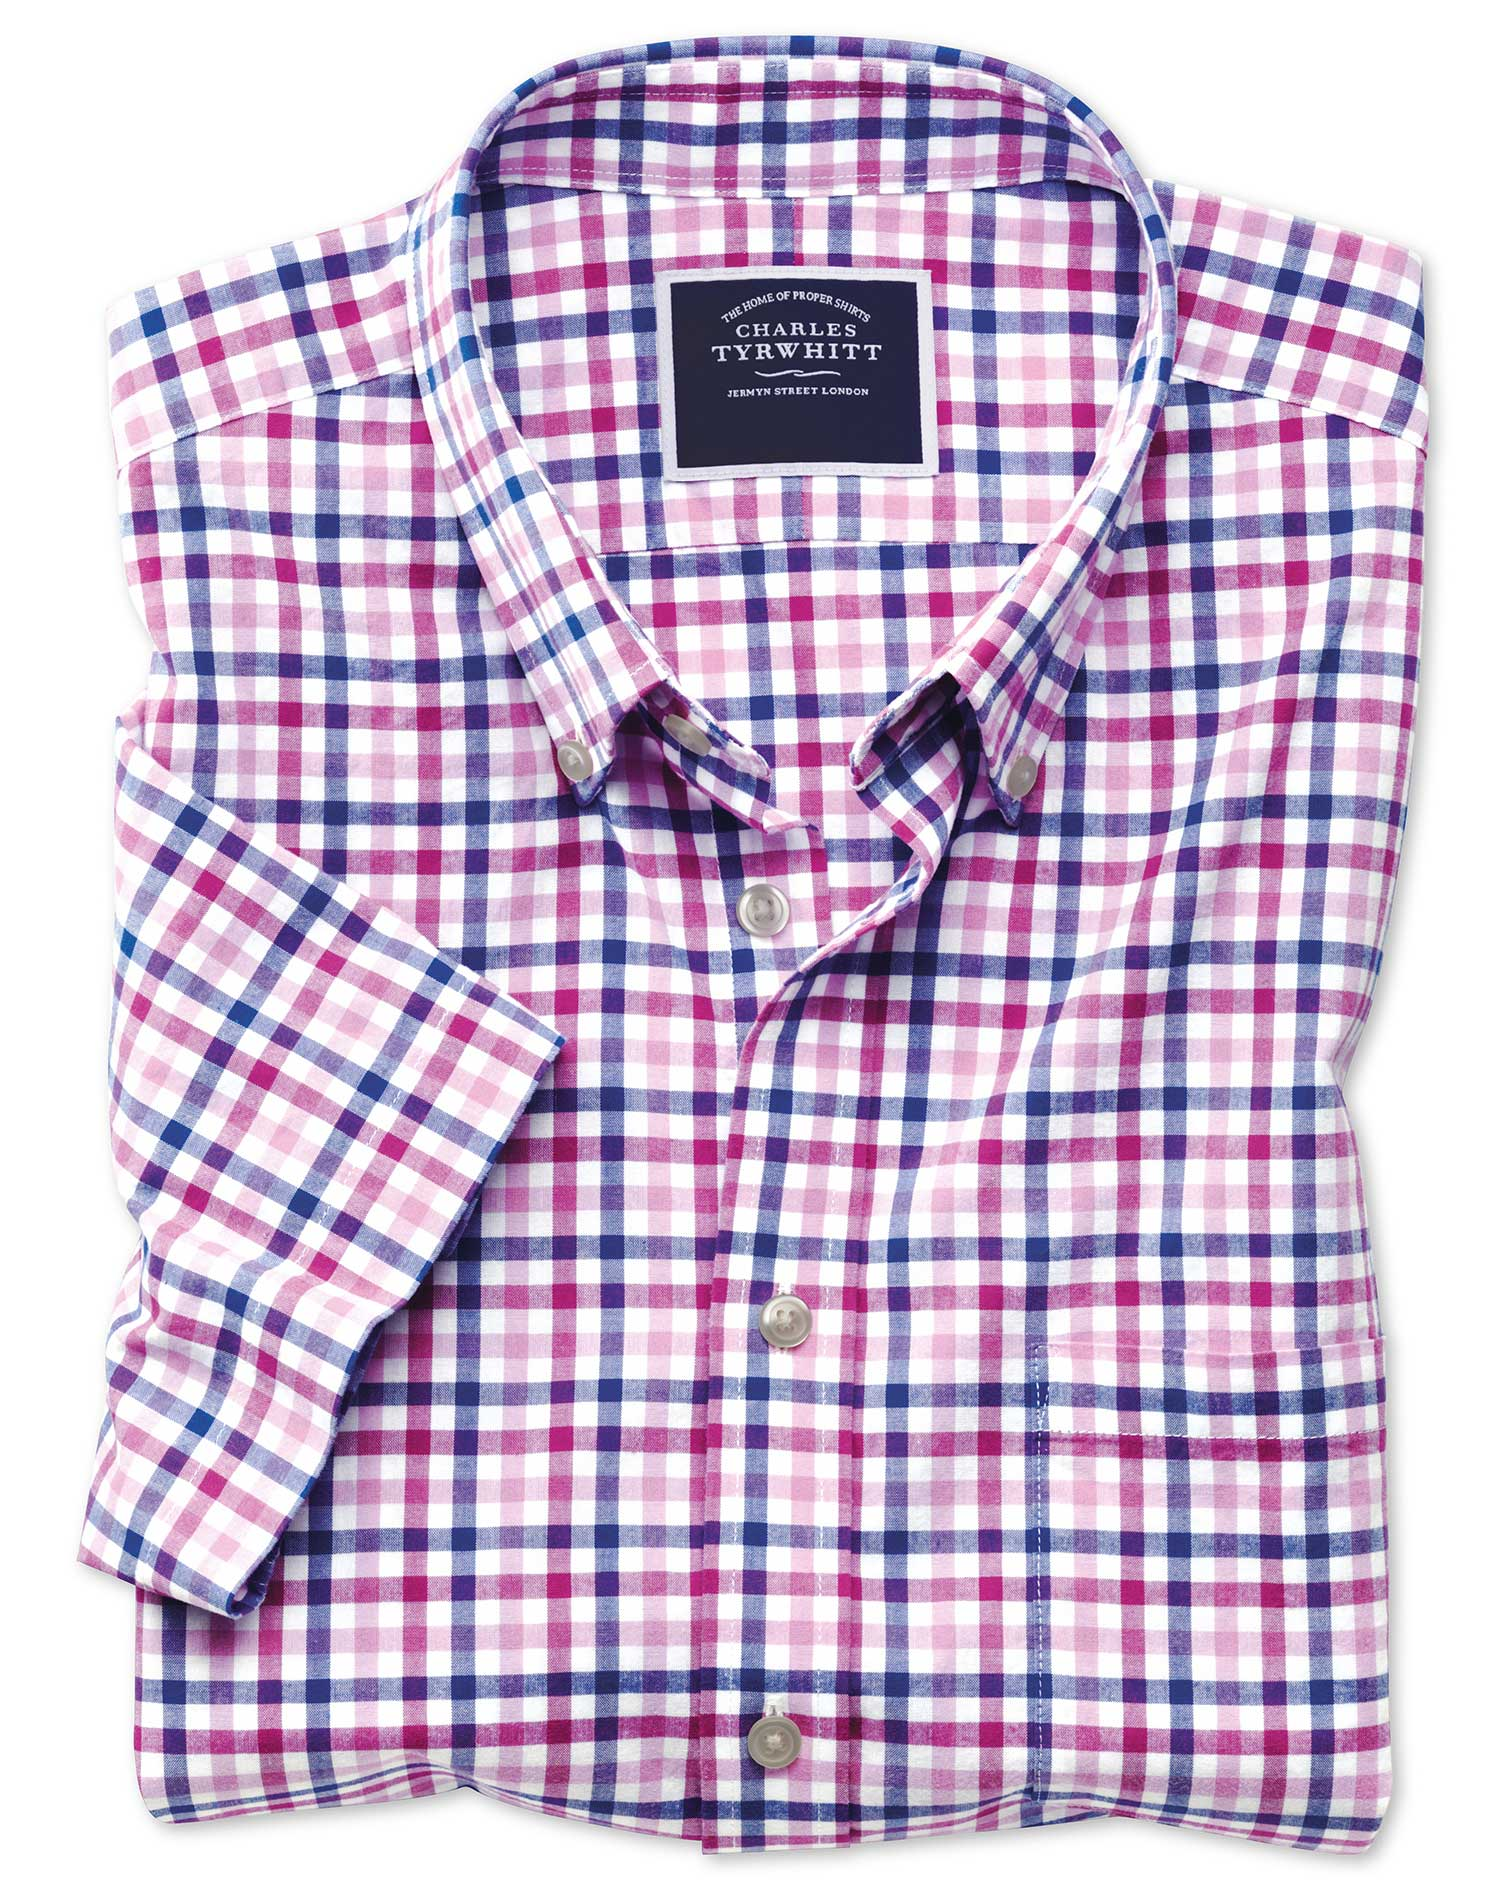 b1266b31c6240 Clearance. Slim fit poplin short sleeve pink multi gingham shirt · Clearance